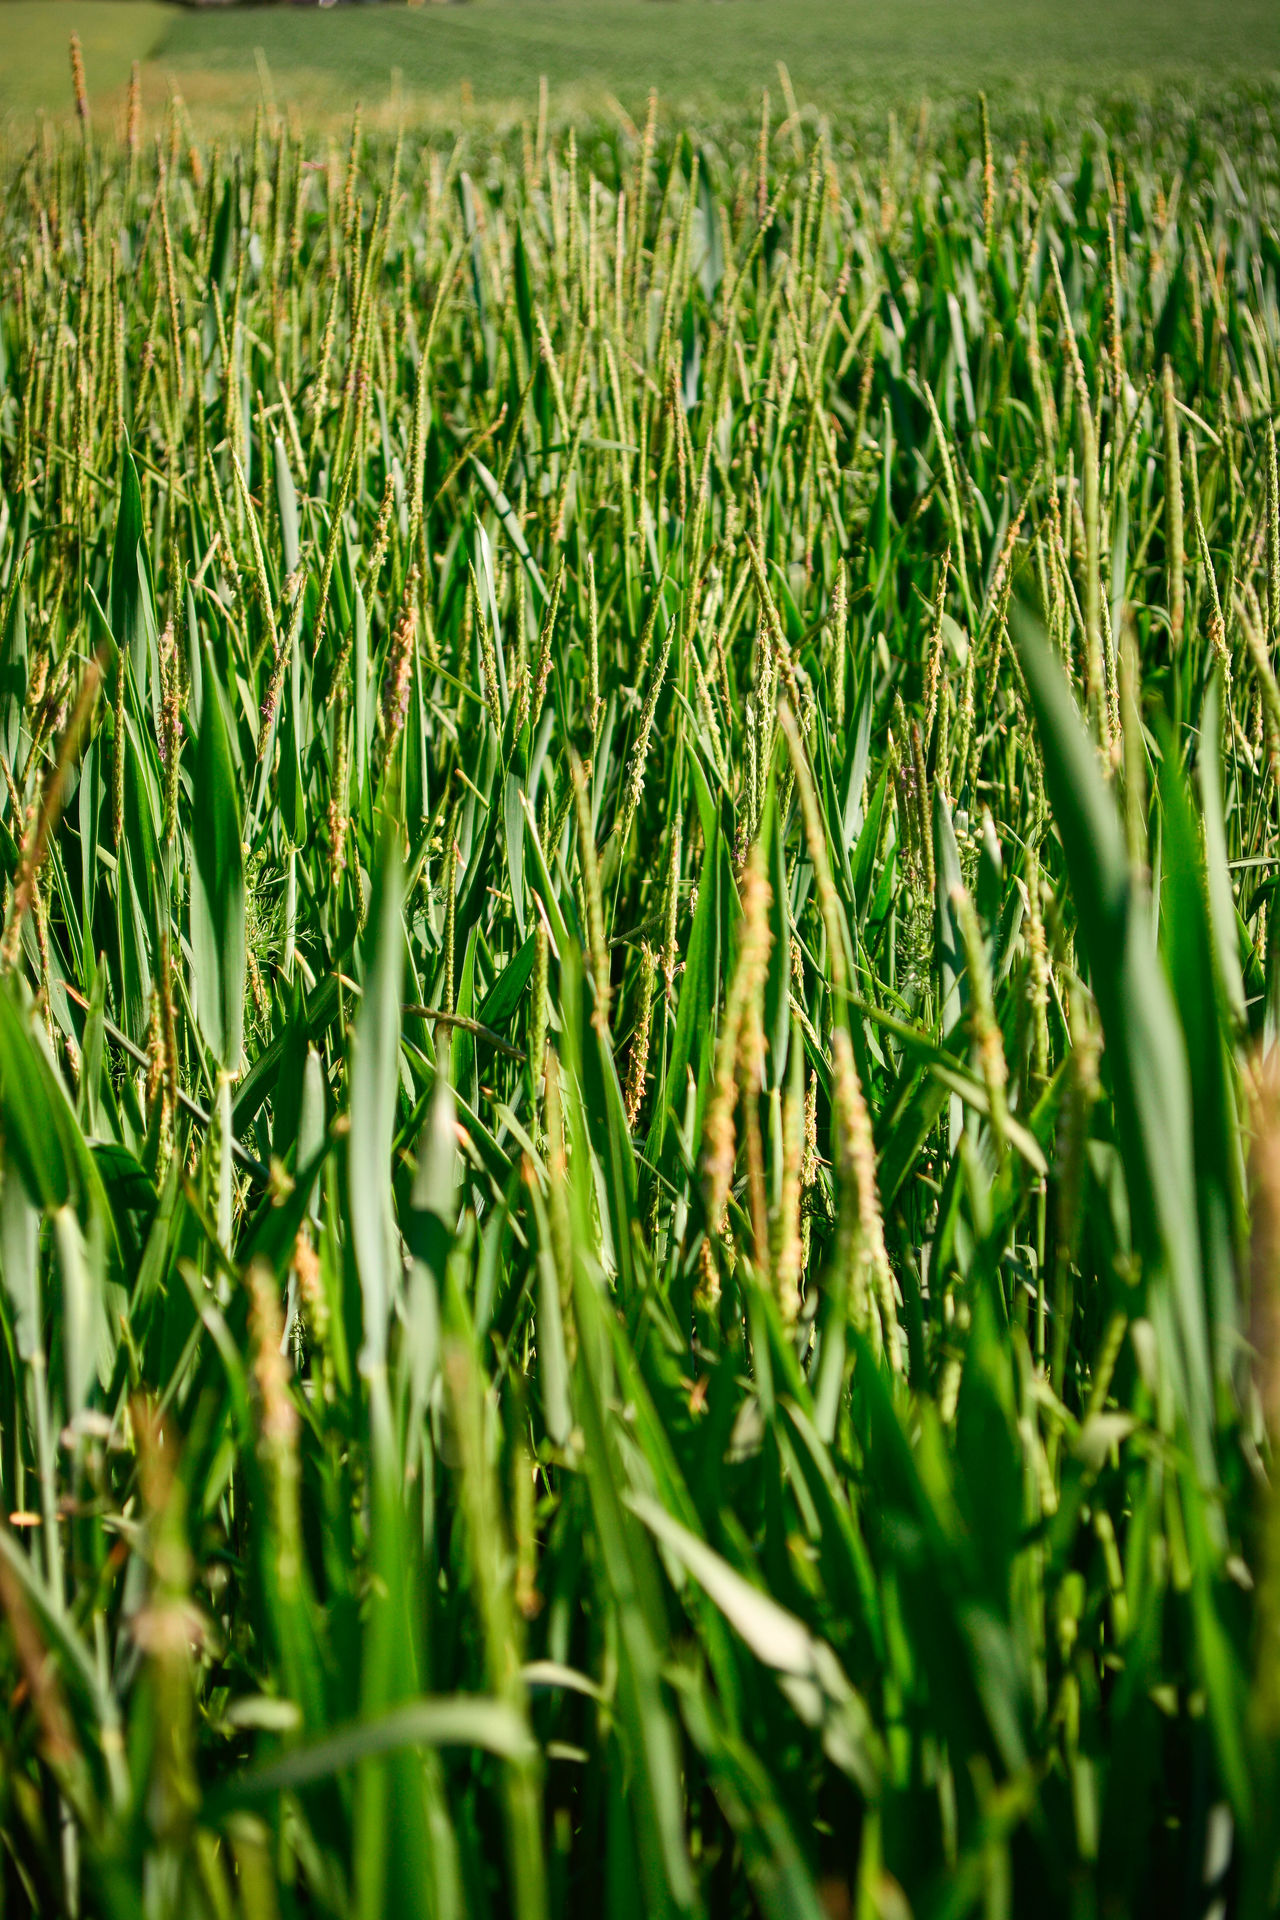 Agriculture Beauty In Nature Close-up Day Field Full Frame Grass Green Color Growth Nature No People Outdoors Plant Tranquility Wheat Wheat Field The Street Photographer - 2017 EyeEm Awards The Great Outdoors - 2017 EyeEm Awards